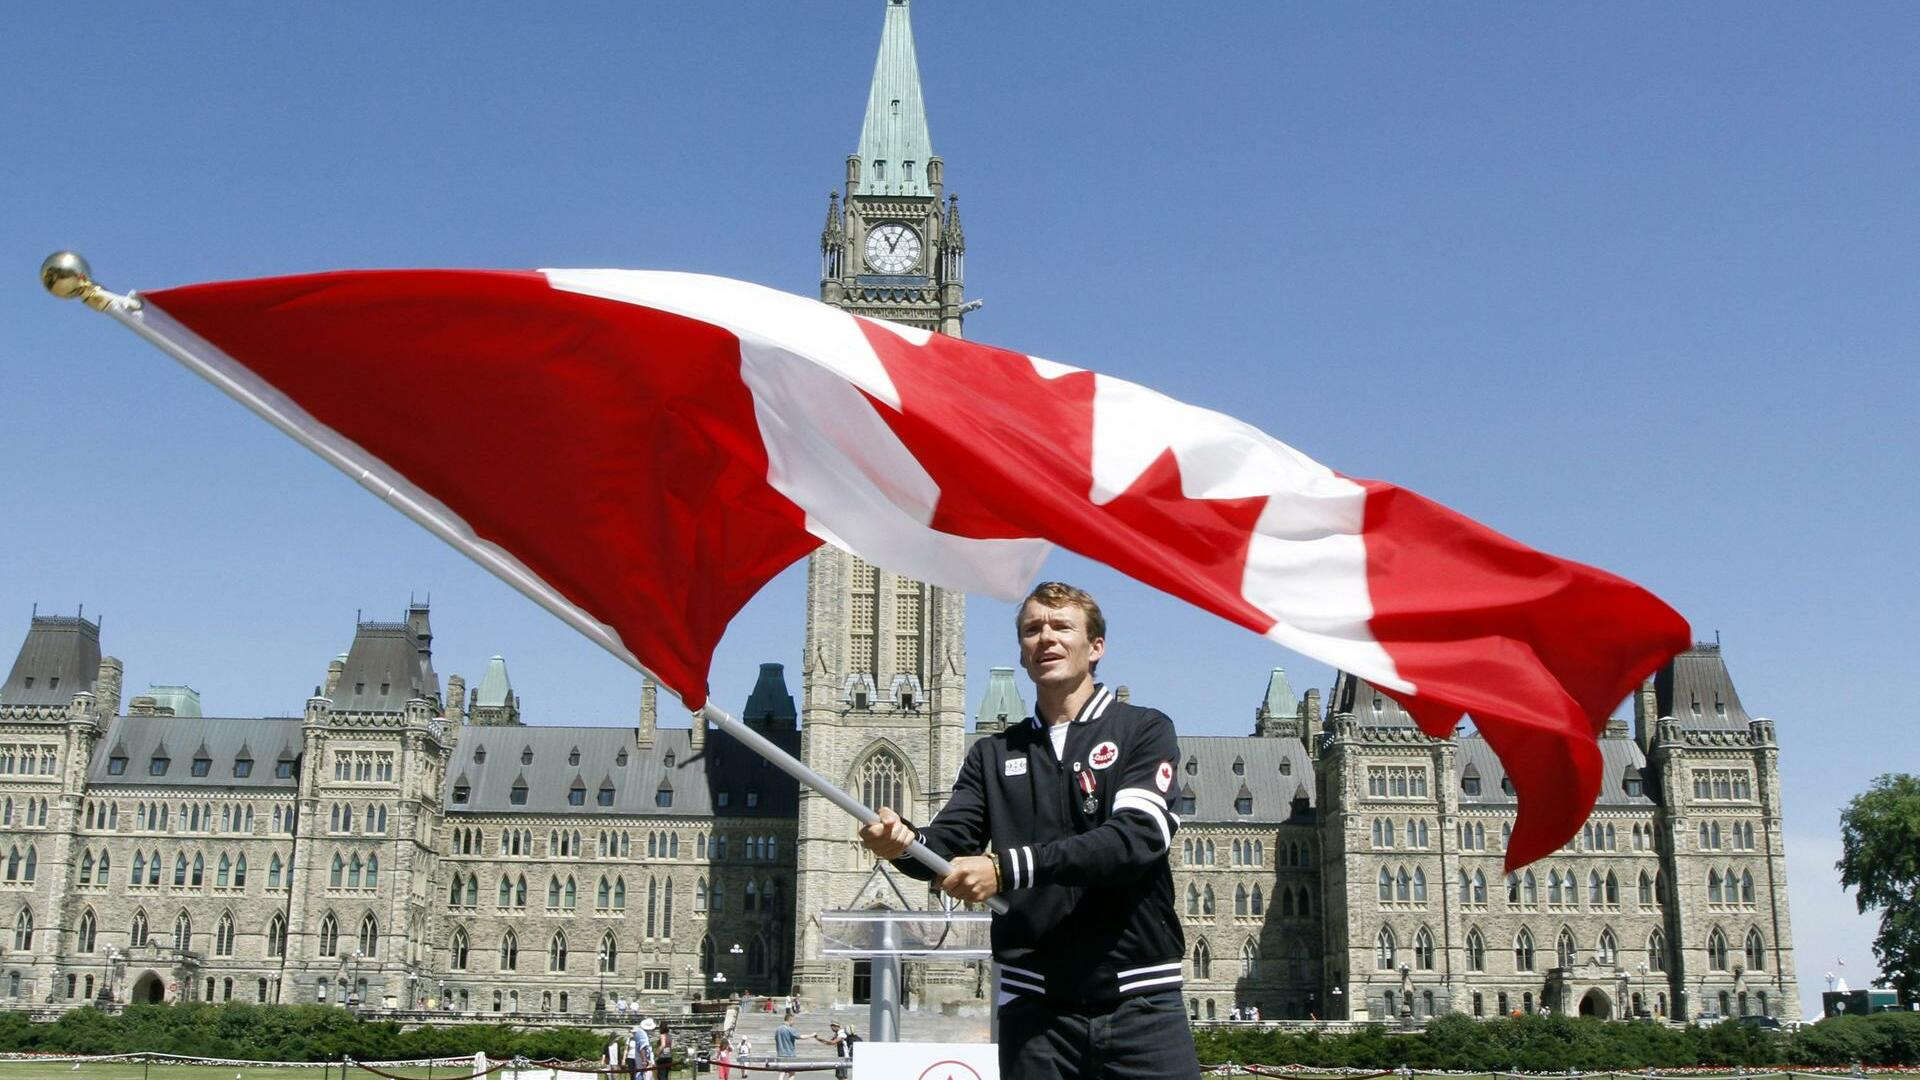 Triathlete Simon Whitfield of British Columbia, waves the Canadian Flag on Parliament Hill in Ottawa. Quelle: dapd